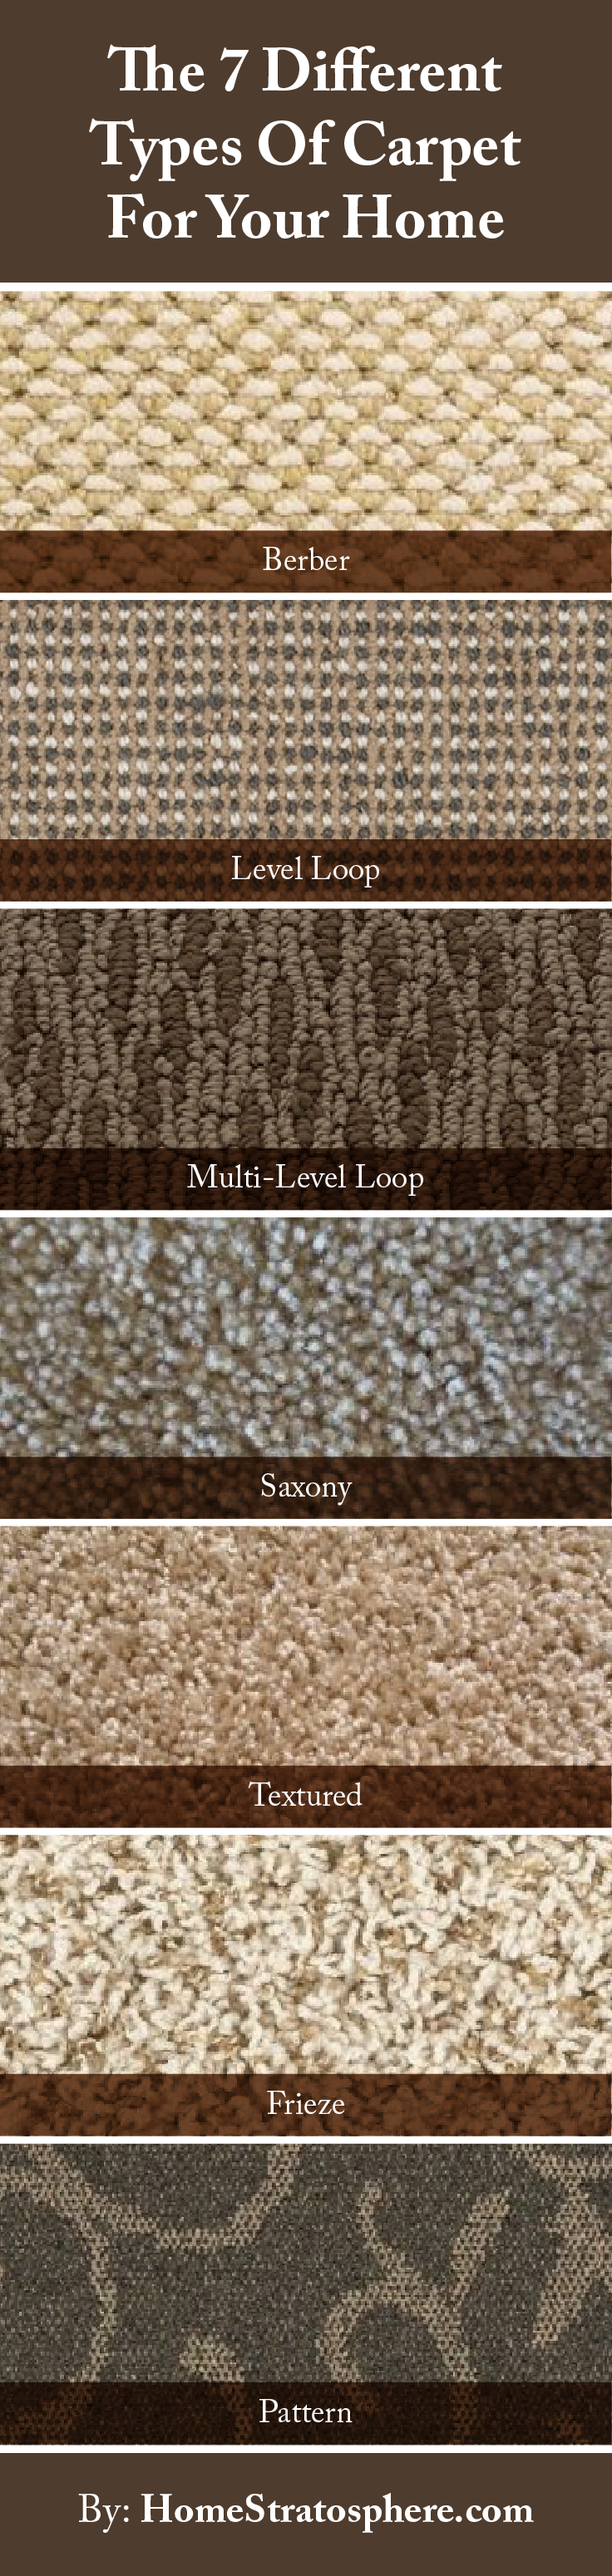 Different Types Of Rugs Produced By Rug Manufacturers In 2020